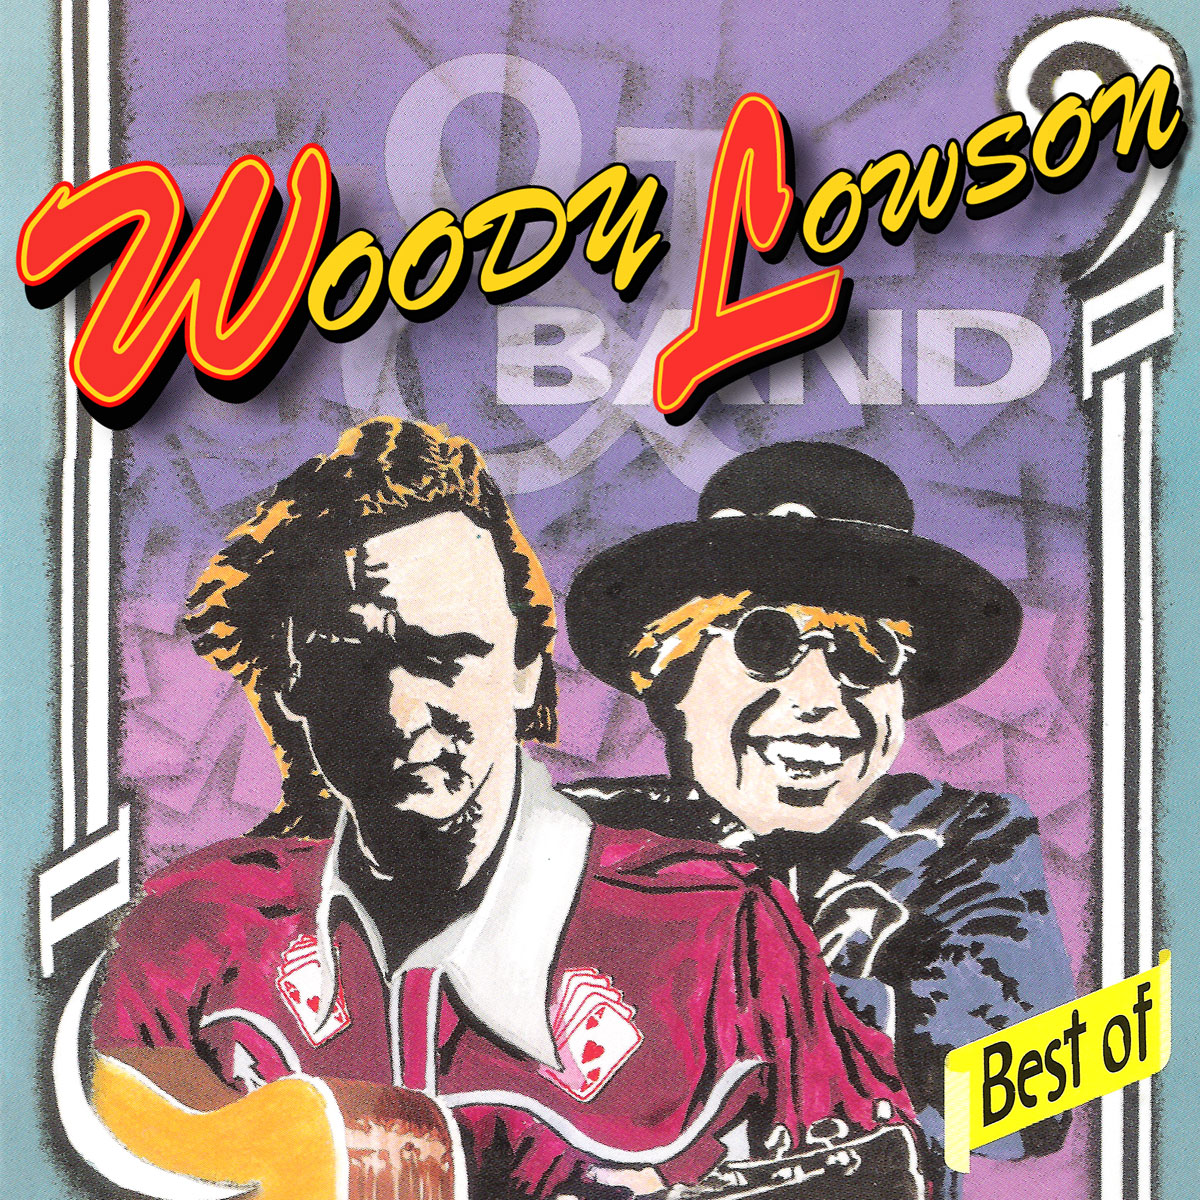 Best Of Woody & Lowson 1998